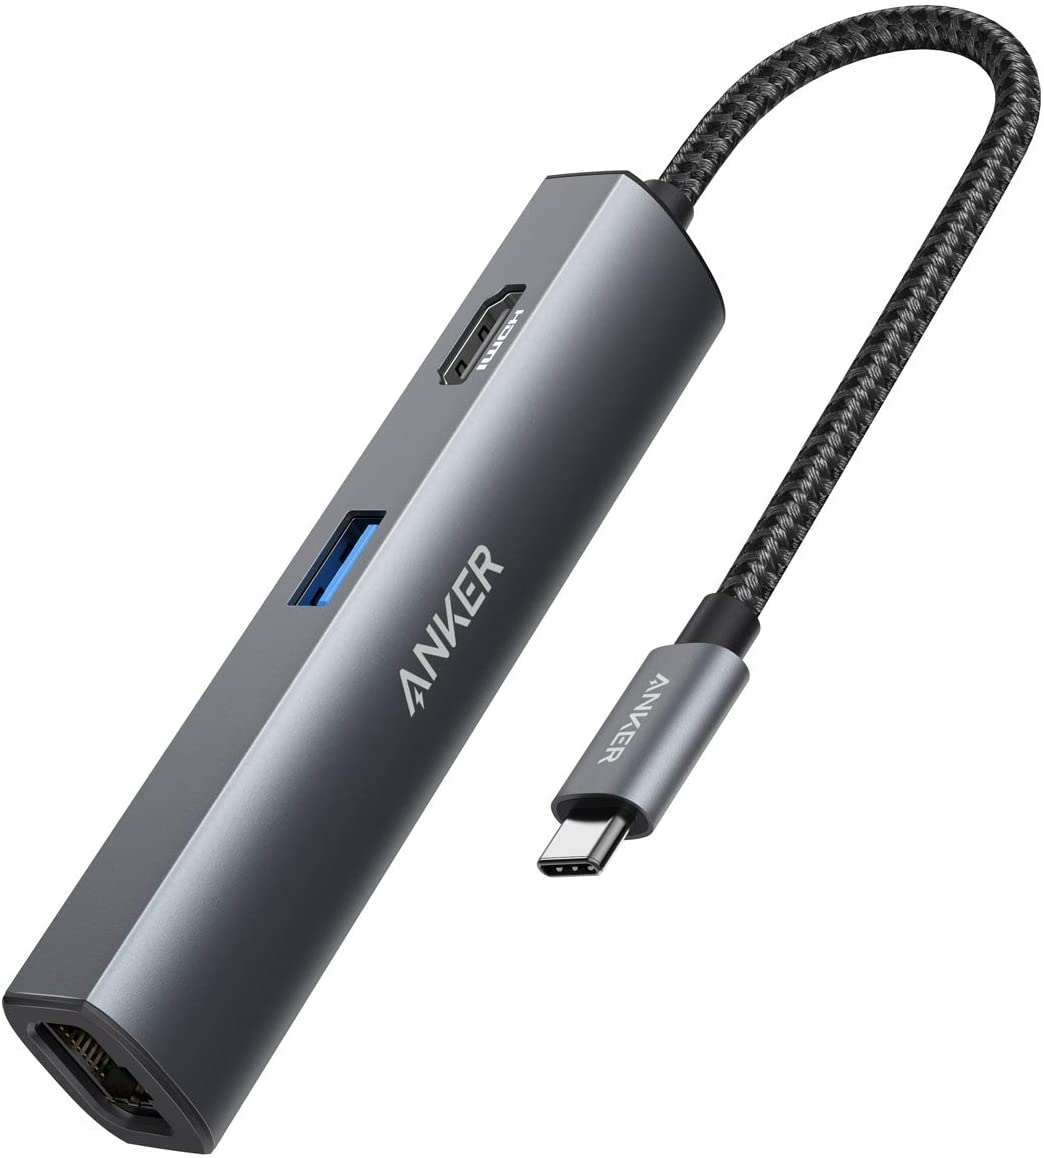 Anker USB C Hub [Upgraded], 5-in-1 USB C Adapter with 4K USB